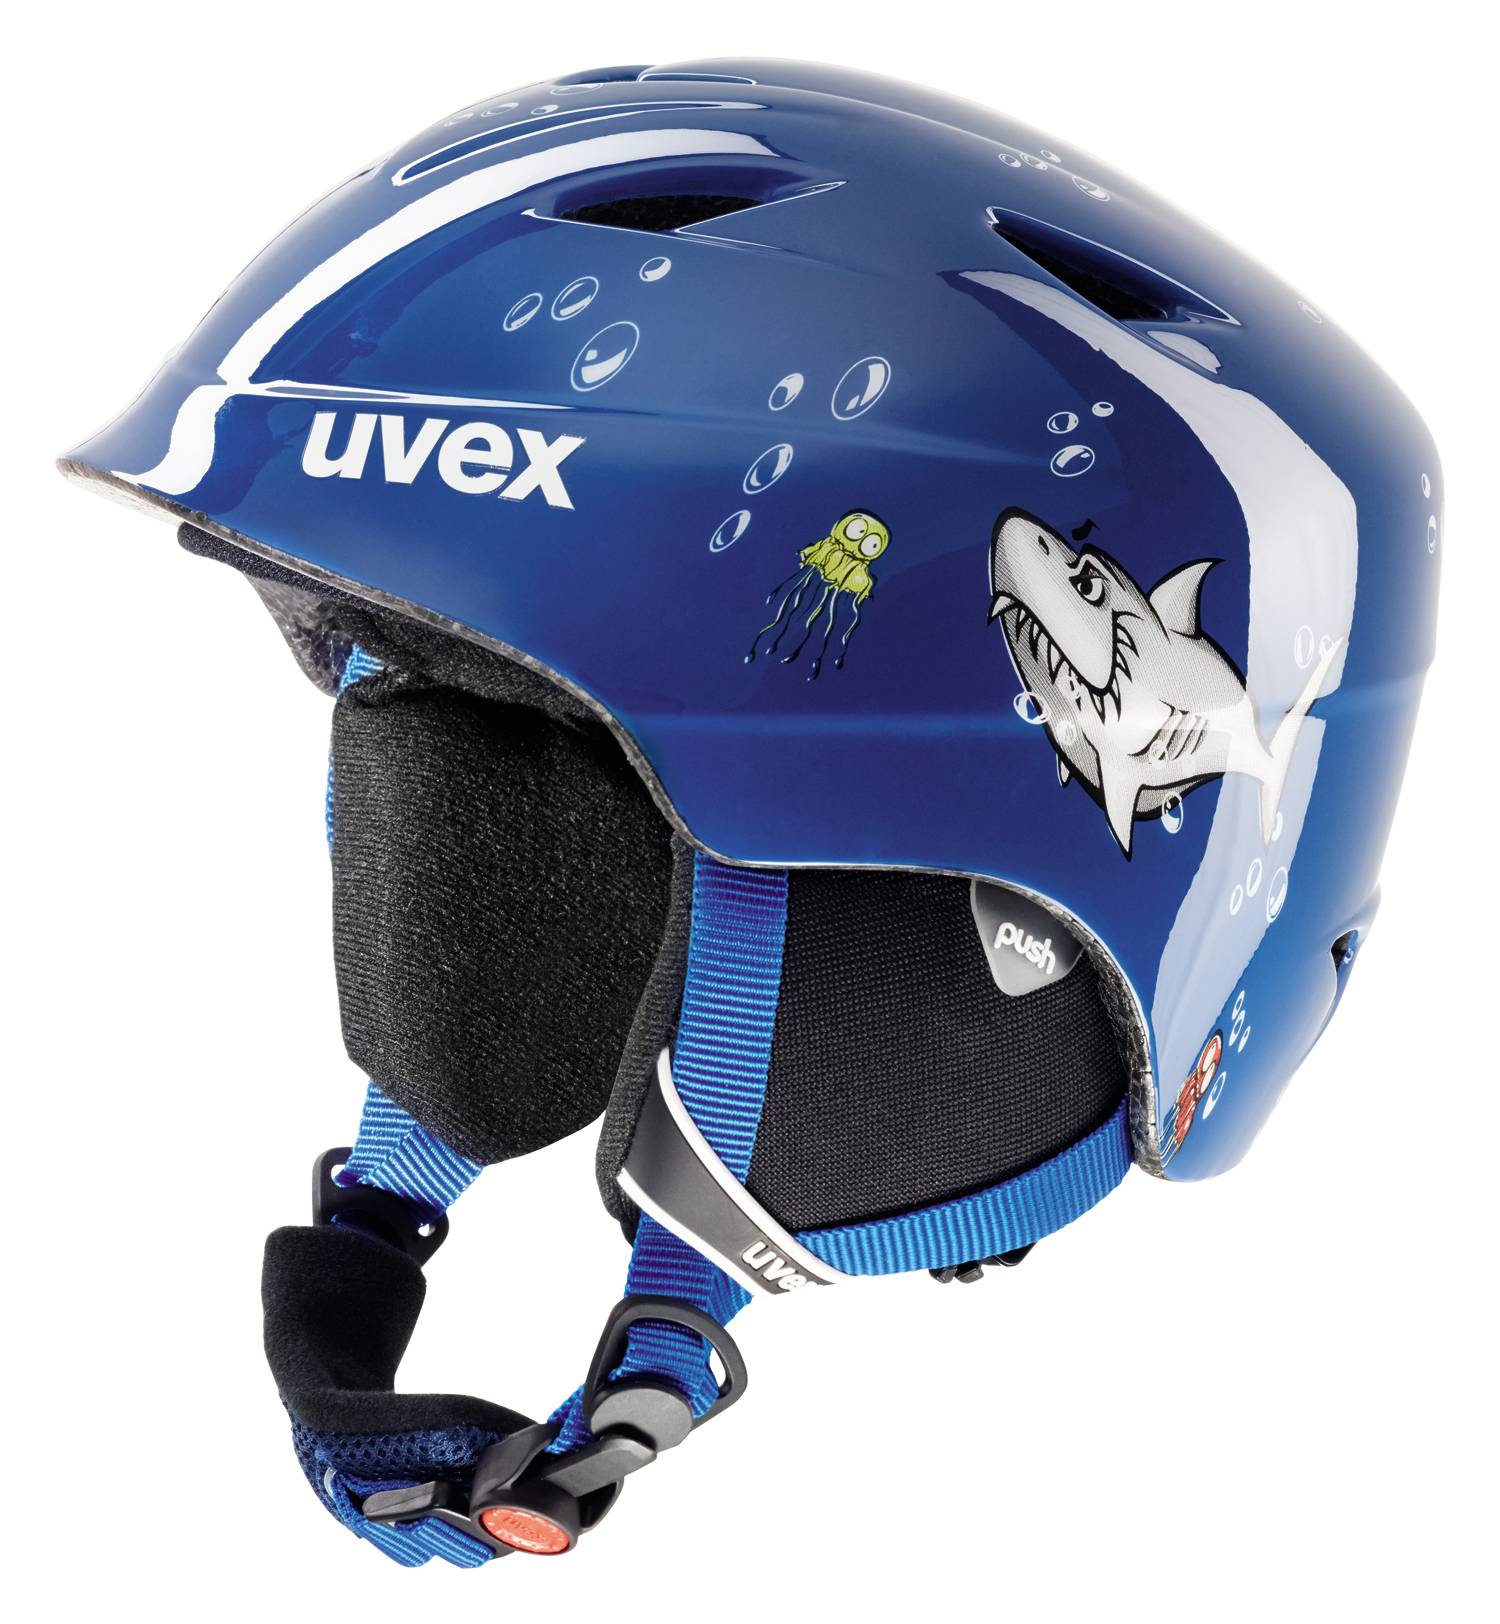 UVEX AIRWING 2, blue shark S566132470 16/17 48-52 cm